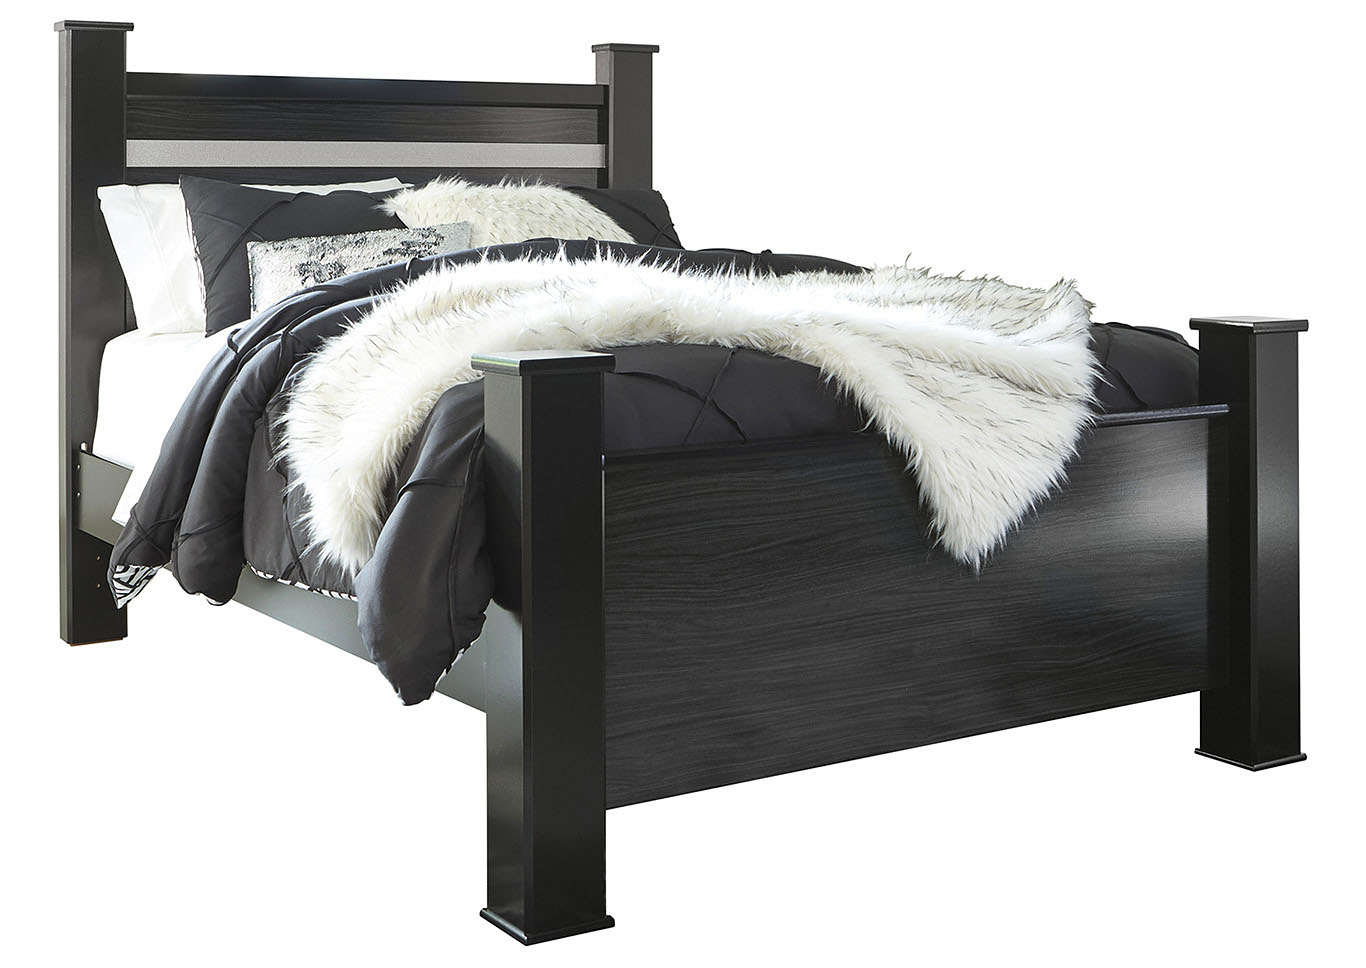 Starberry Black Queen Poster Bed,Signature Design By Ashley